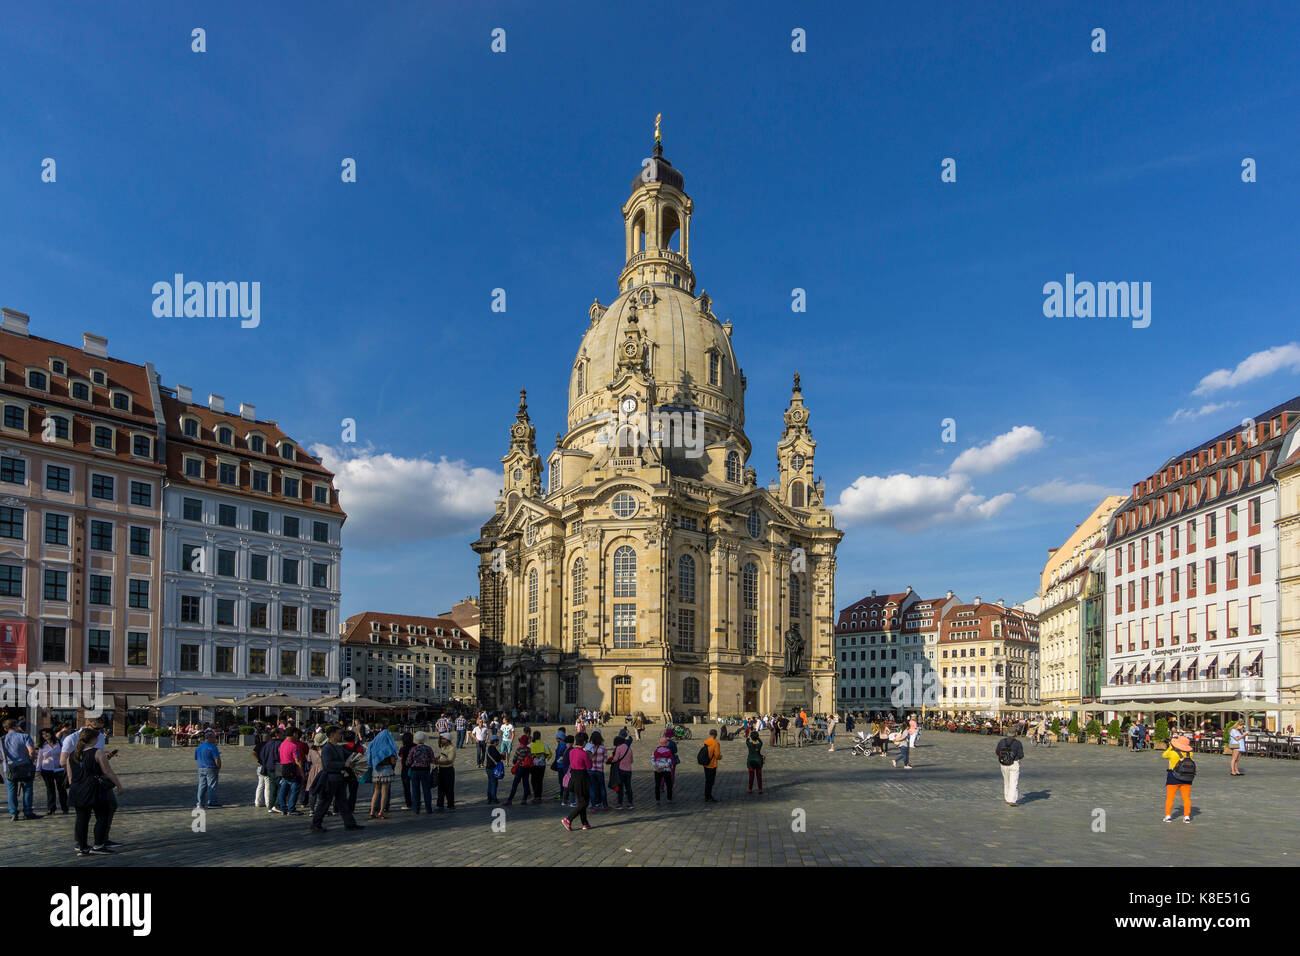 Dresden, Church of Our Lady at the new market, Frauenkirche auf dem Neumarkt - Stock Image